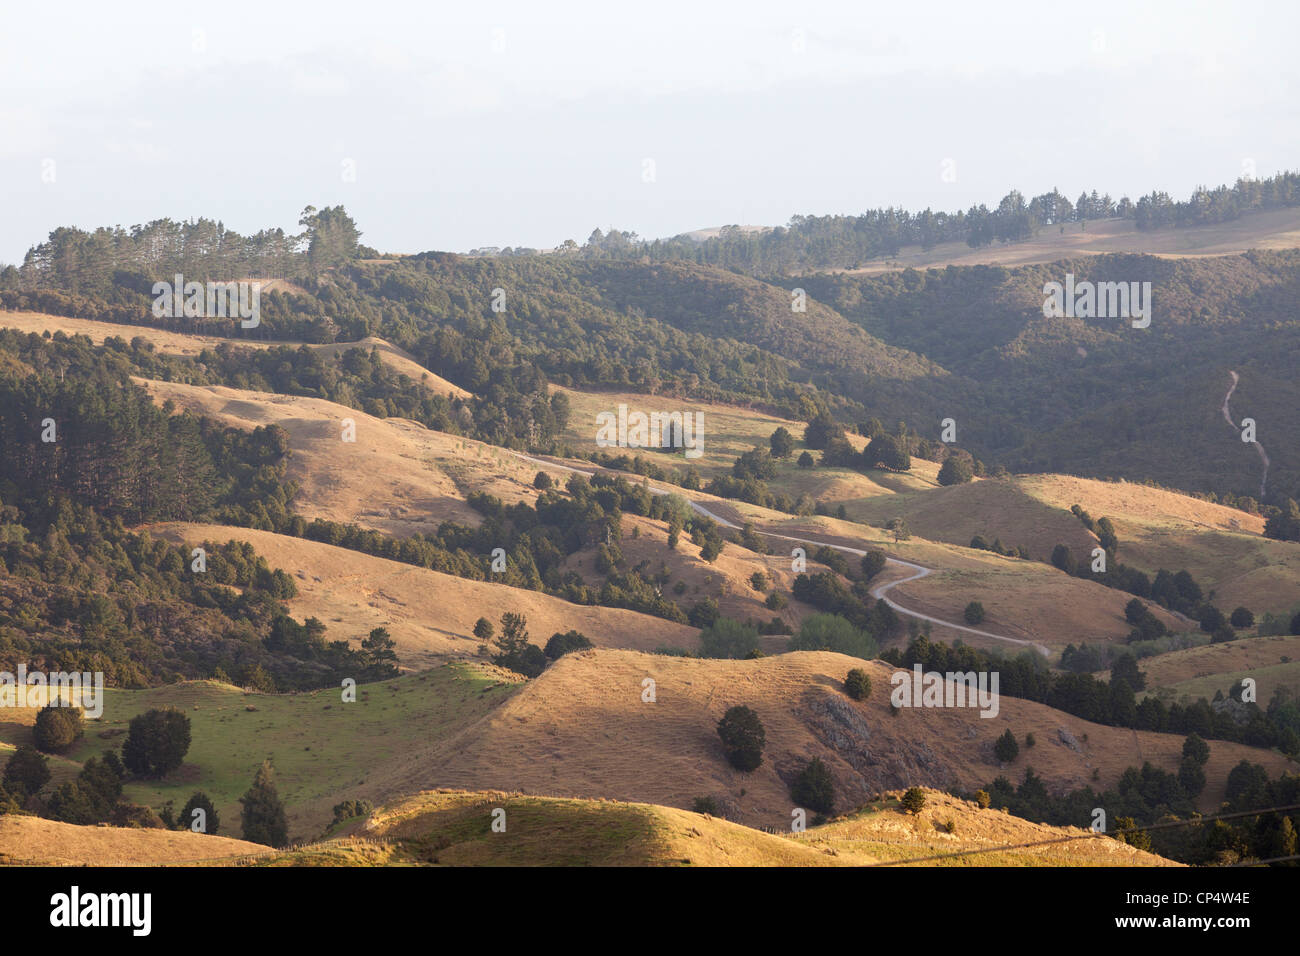 A pastoral scene with golden grass hills, pastureland spotted with trees in northern New Zealand - Stock Image